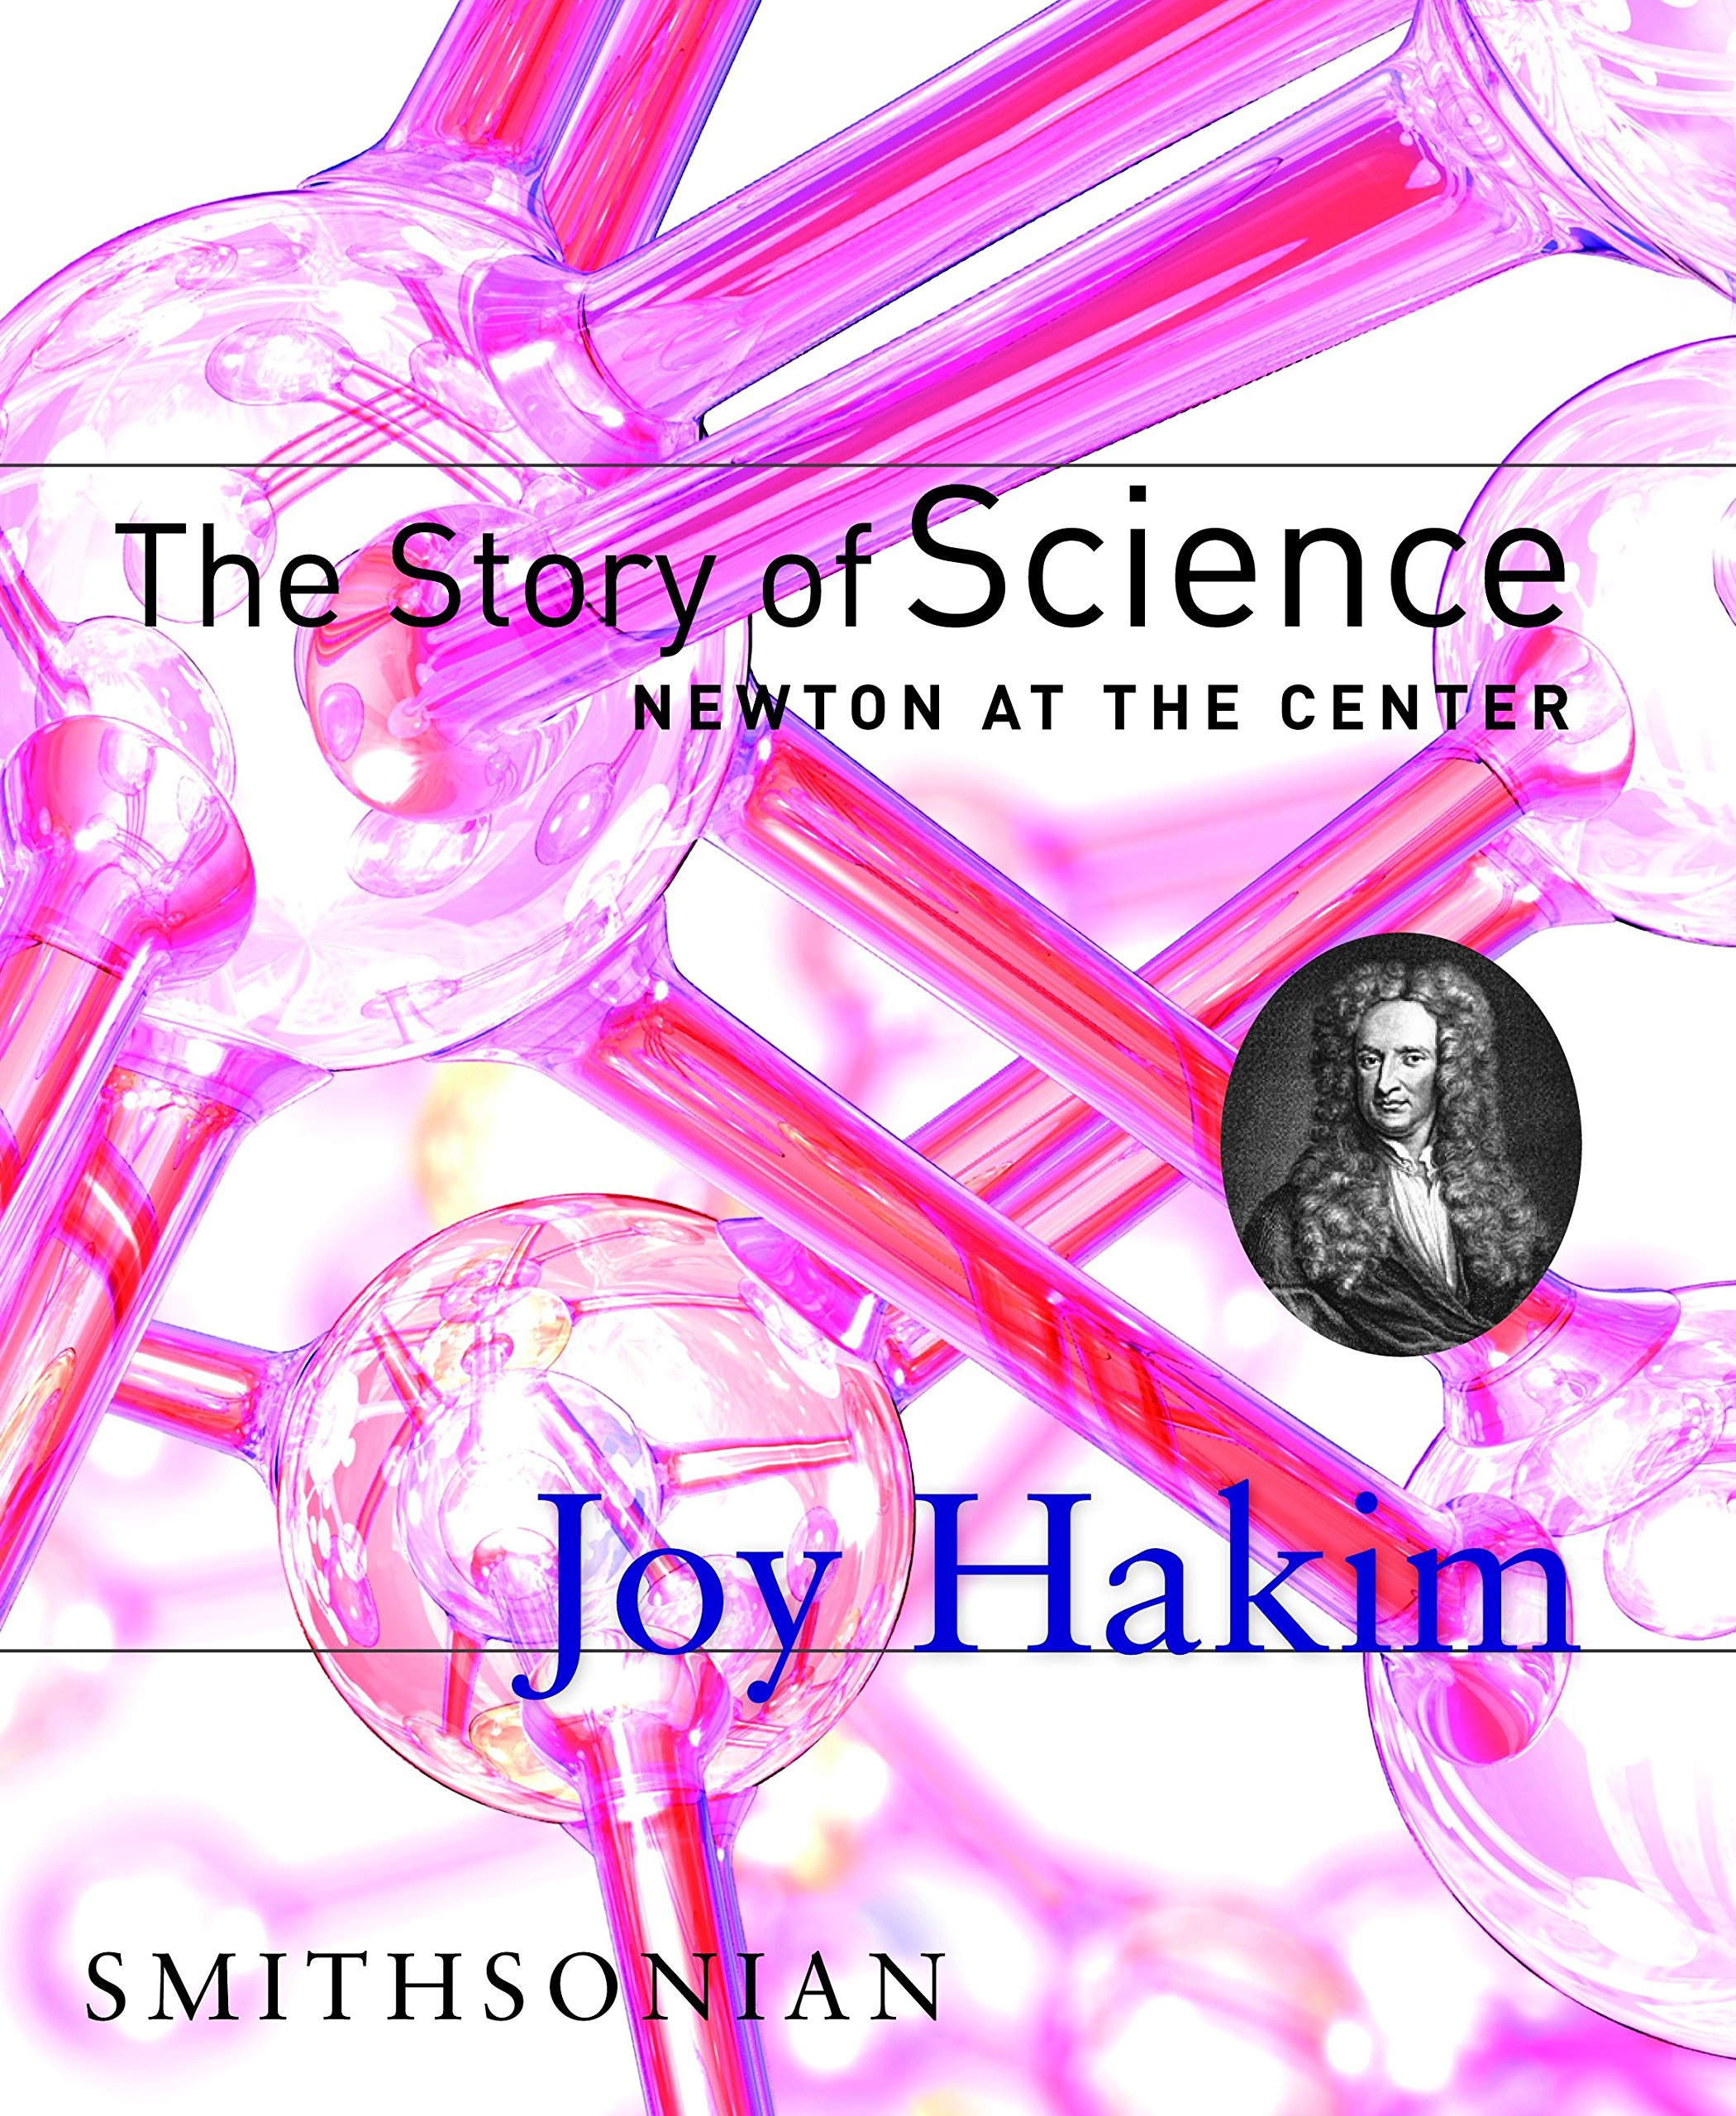 Image OfThe Story Of Science: Newton At The Center